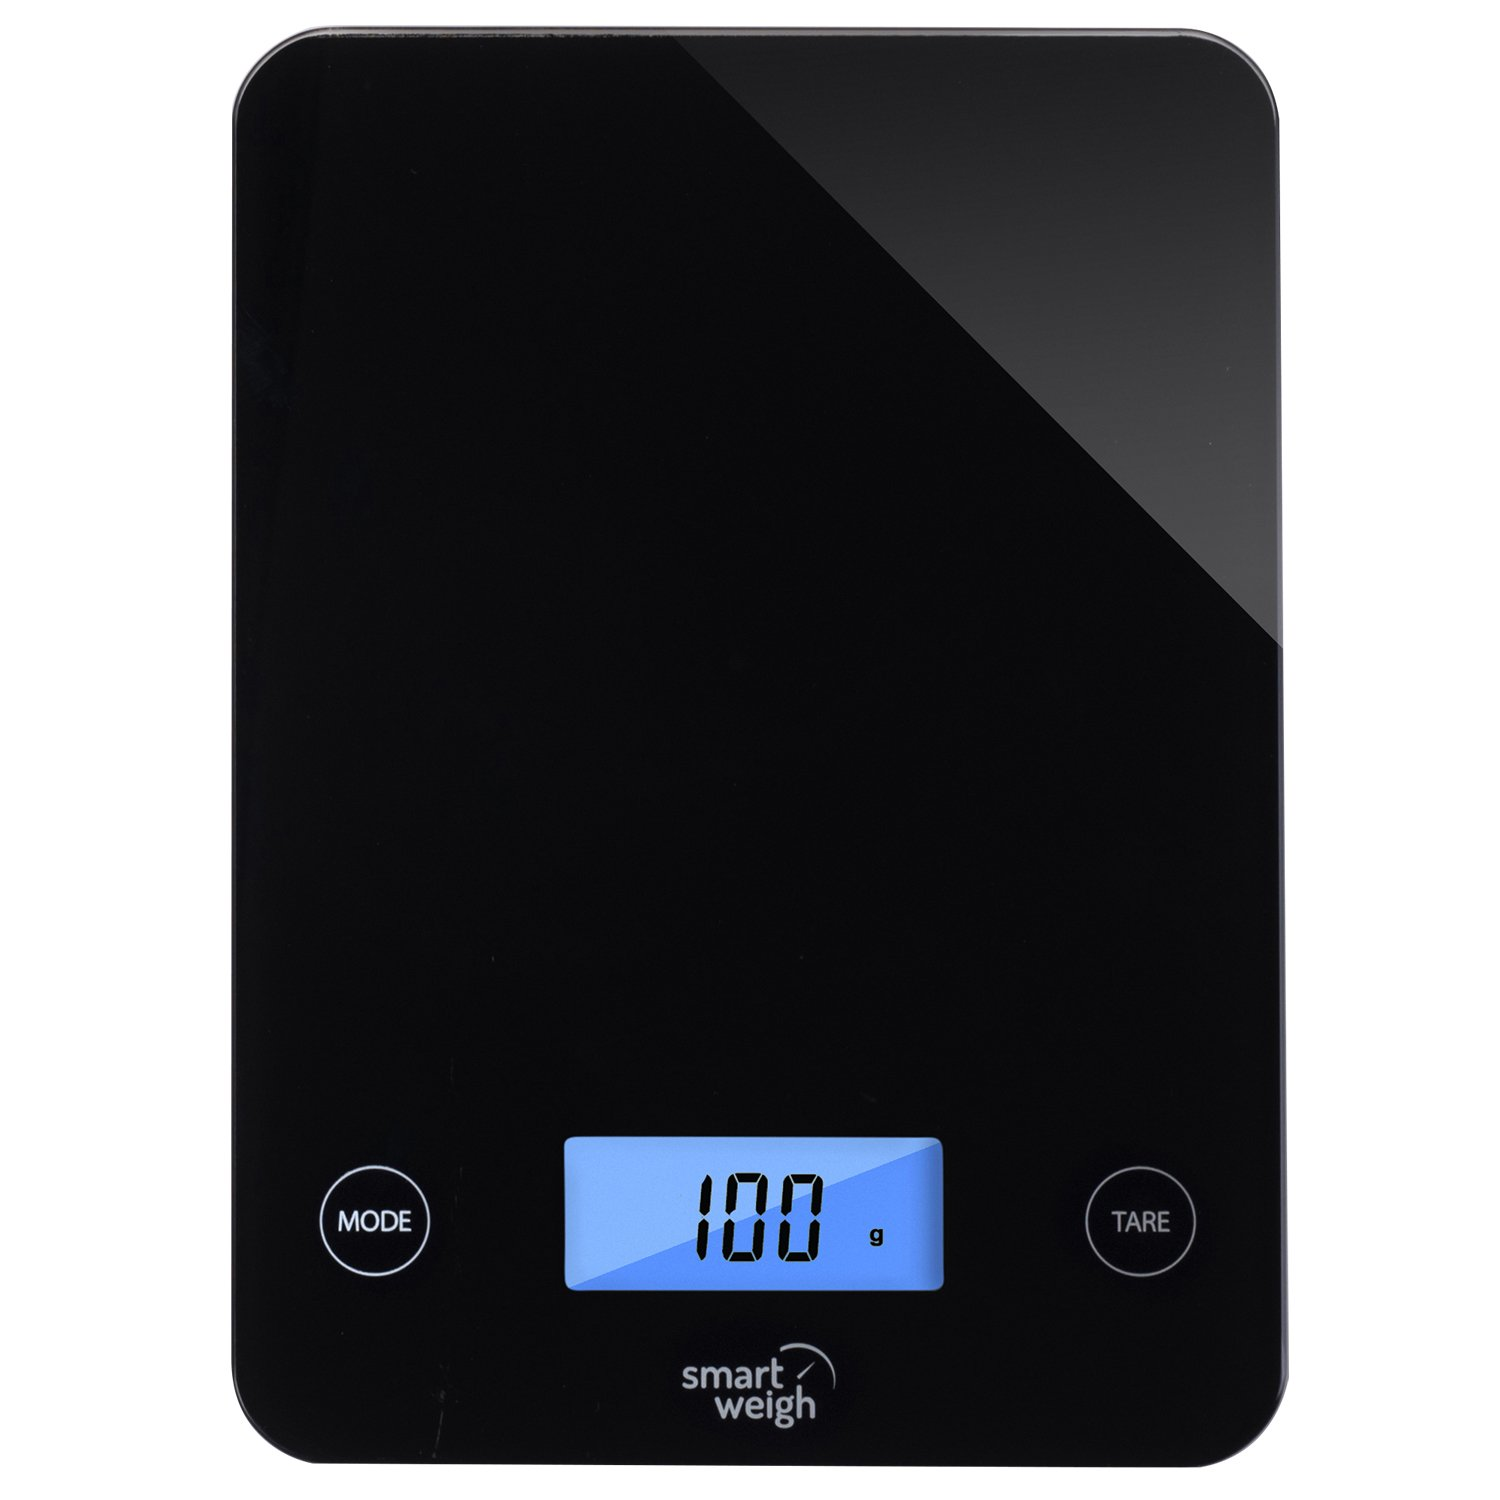 Smart Weigh Digital Glass Top Kitchen and Food Scale, 5- Unit Modes, Liquid Measurement Technology, Professional Design, Black